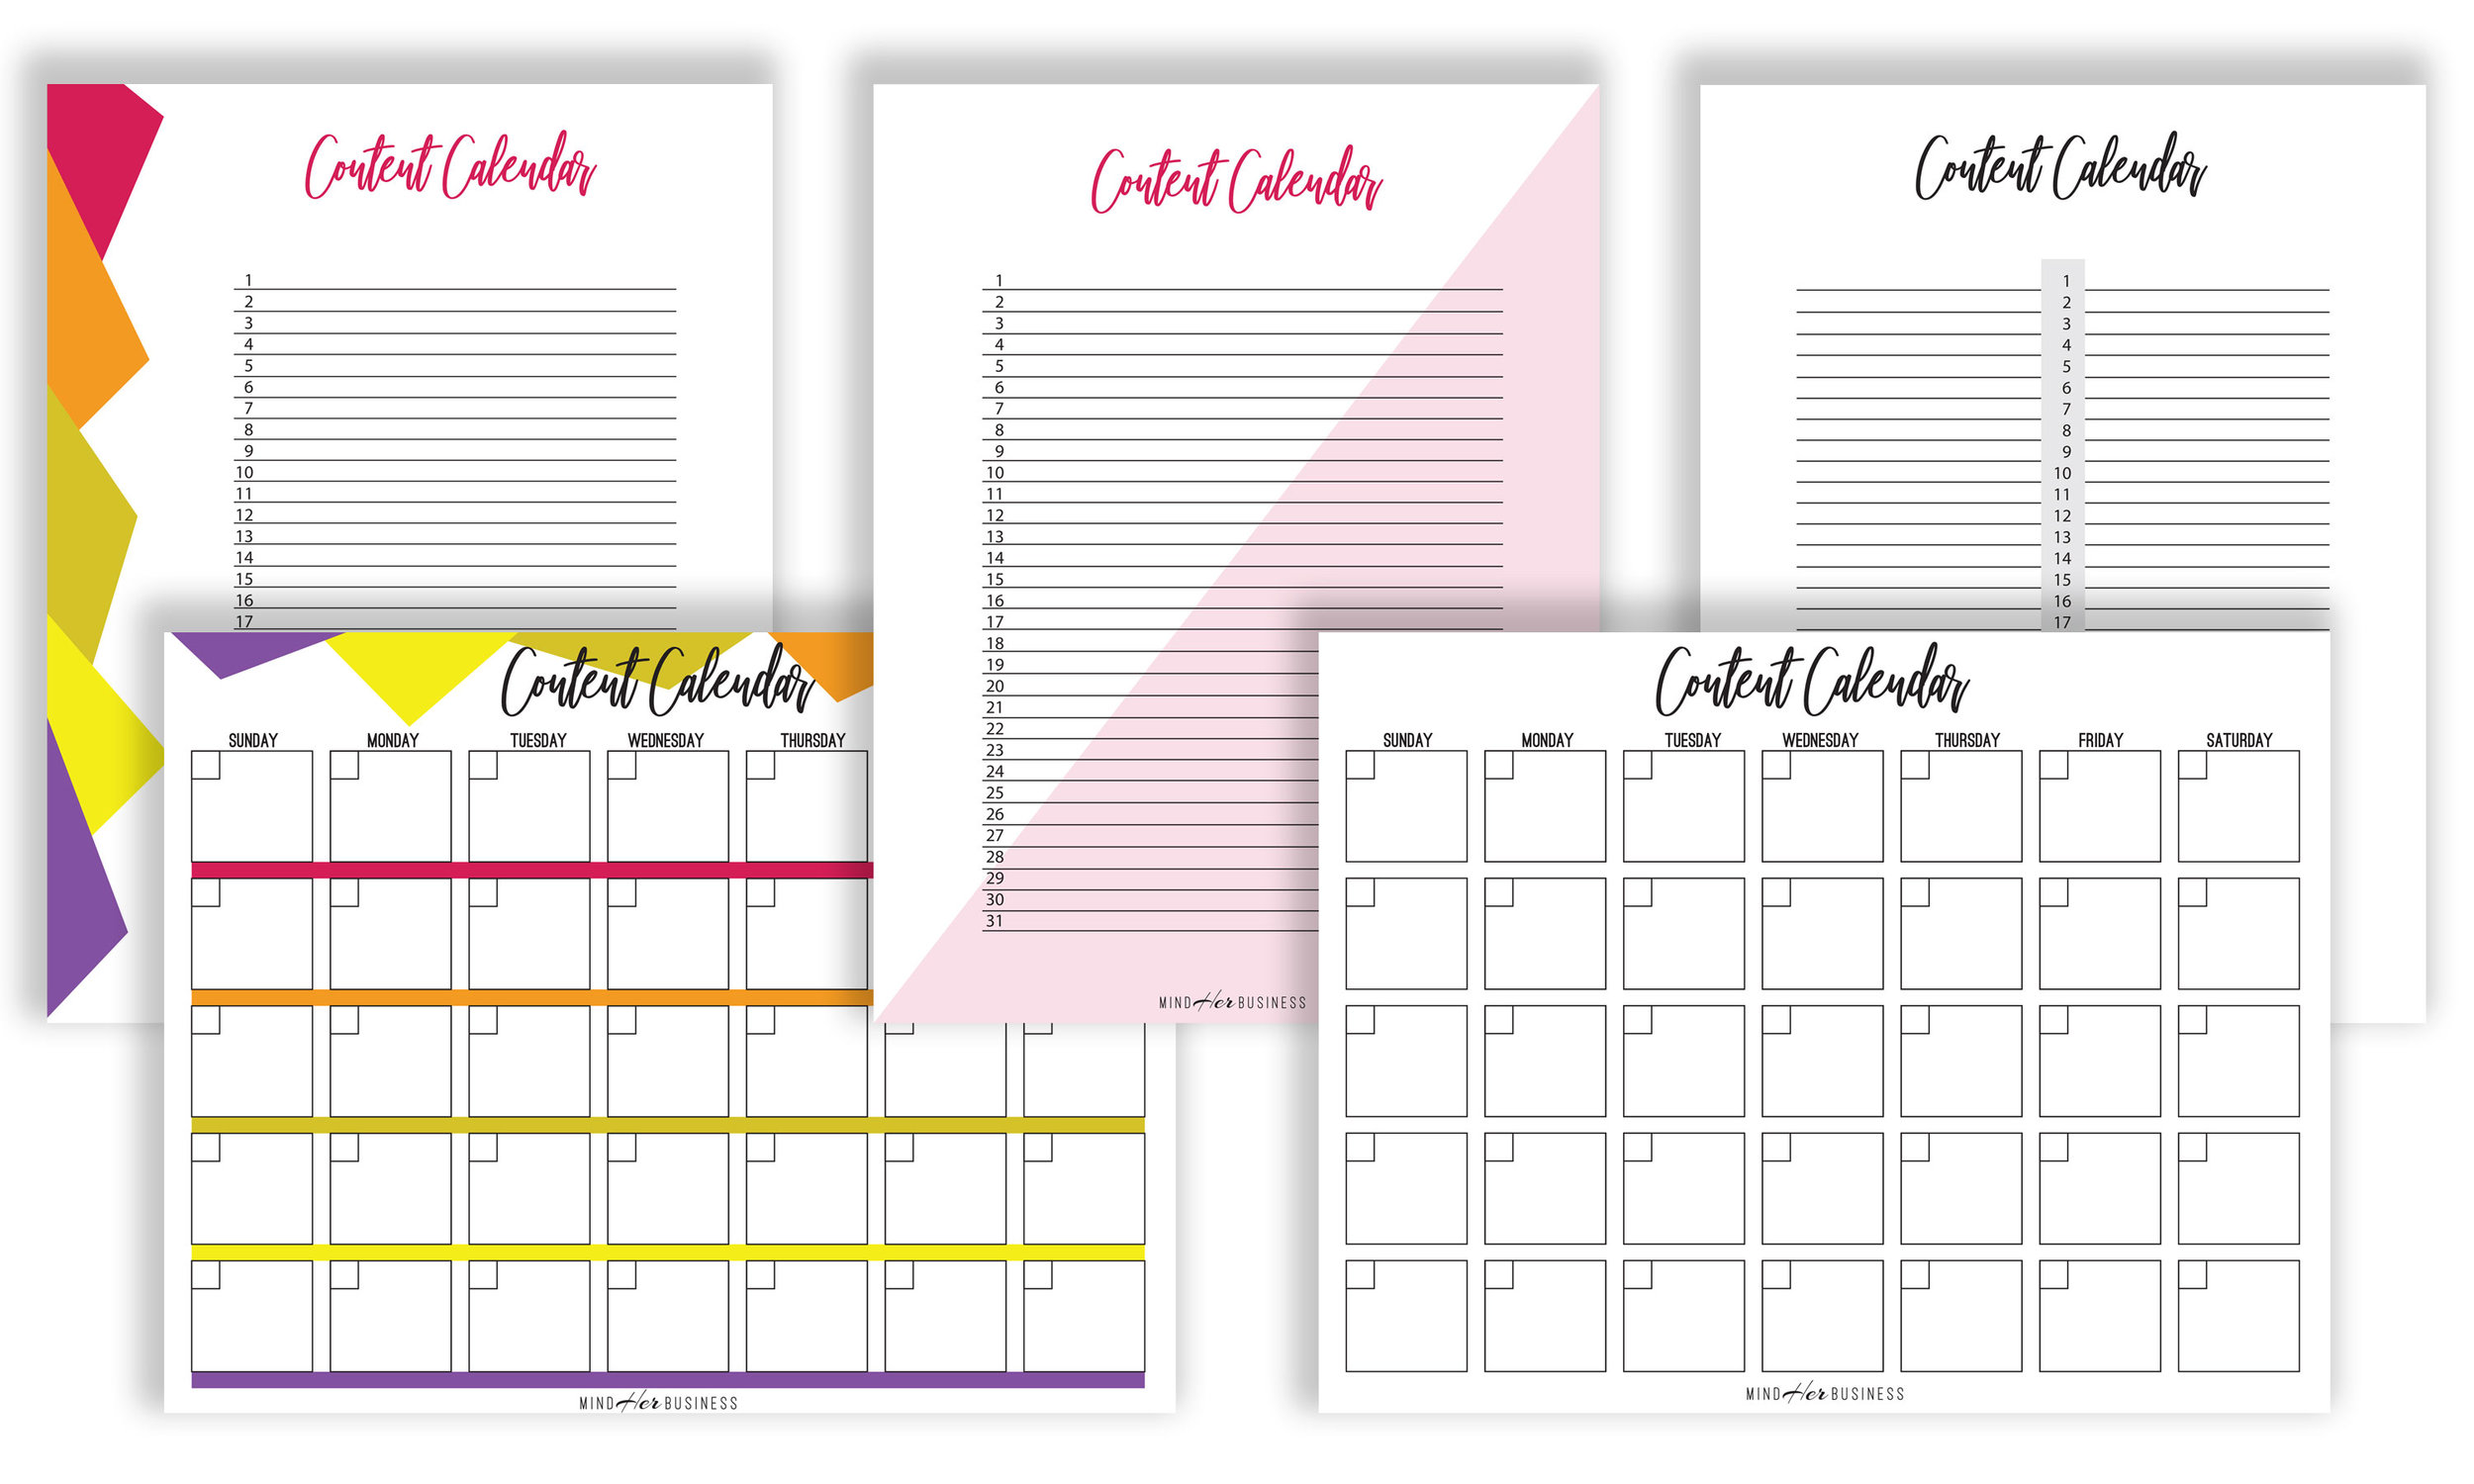 mhb-content-calendars-together.jpg